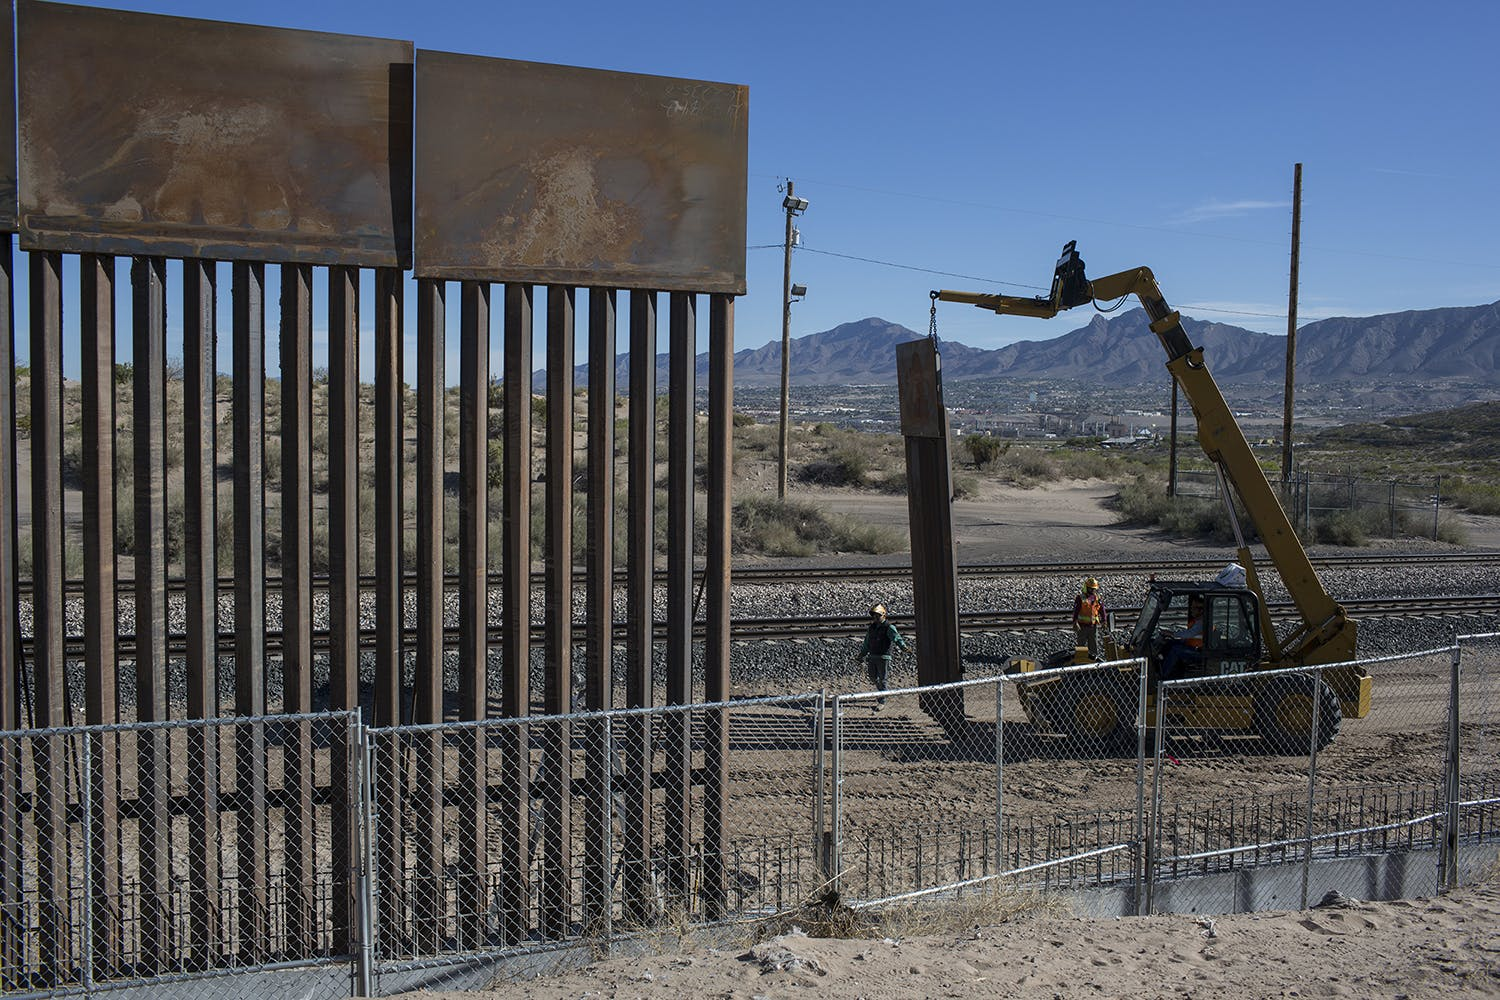 """us fence in the border of mexico essay Related documents: border fence - article analysys essay essays: united states and border according to a new series on the national geographic channel, the united states is involved in a """"border war"""" with mexico."""